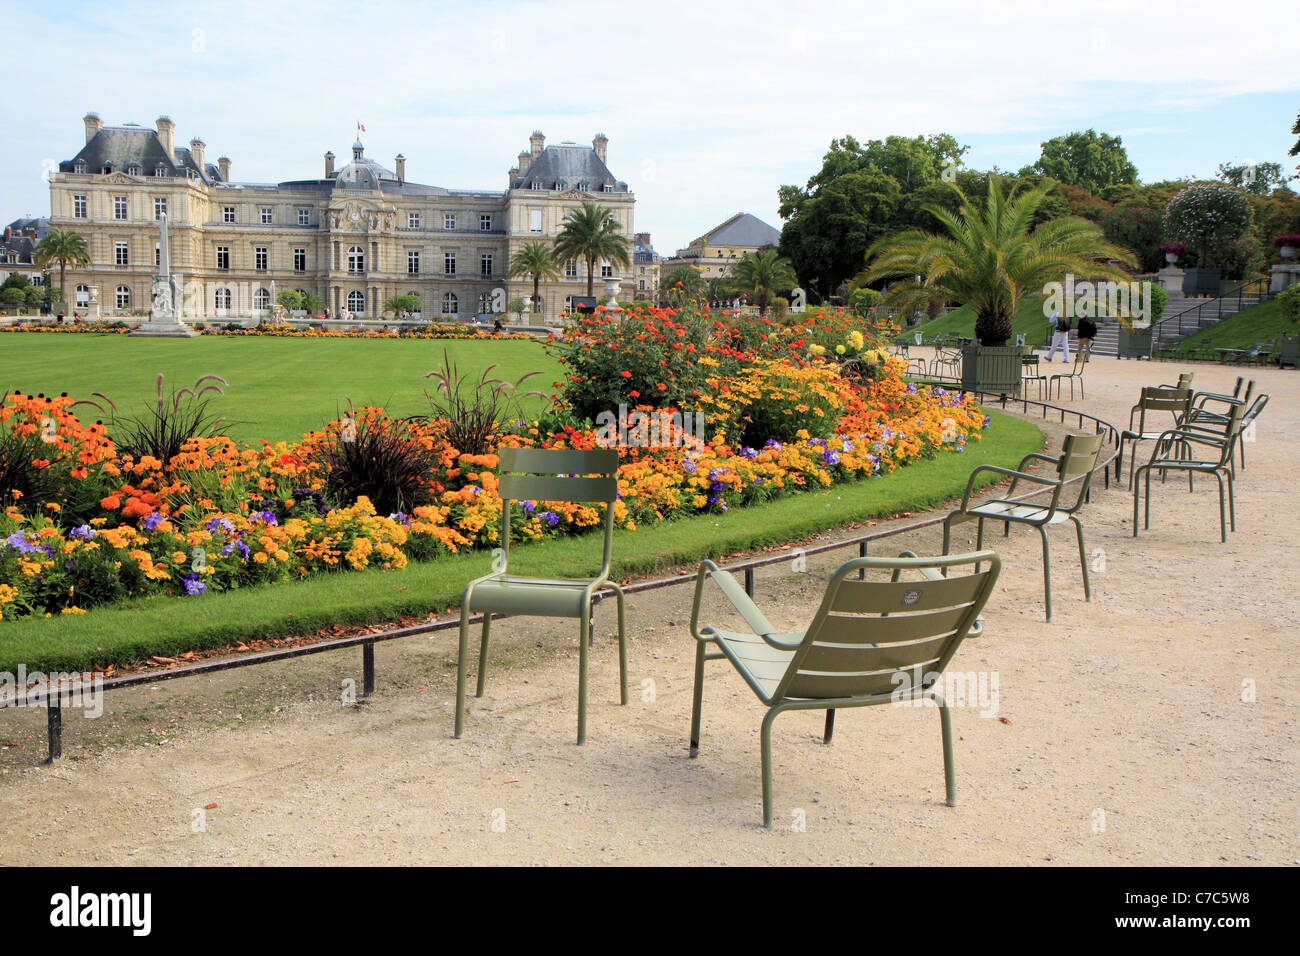 Luxembourg gardens, Paris, France - Stock Image